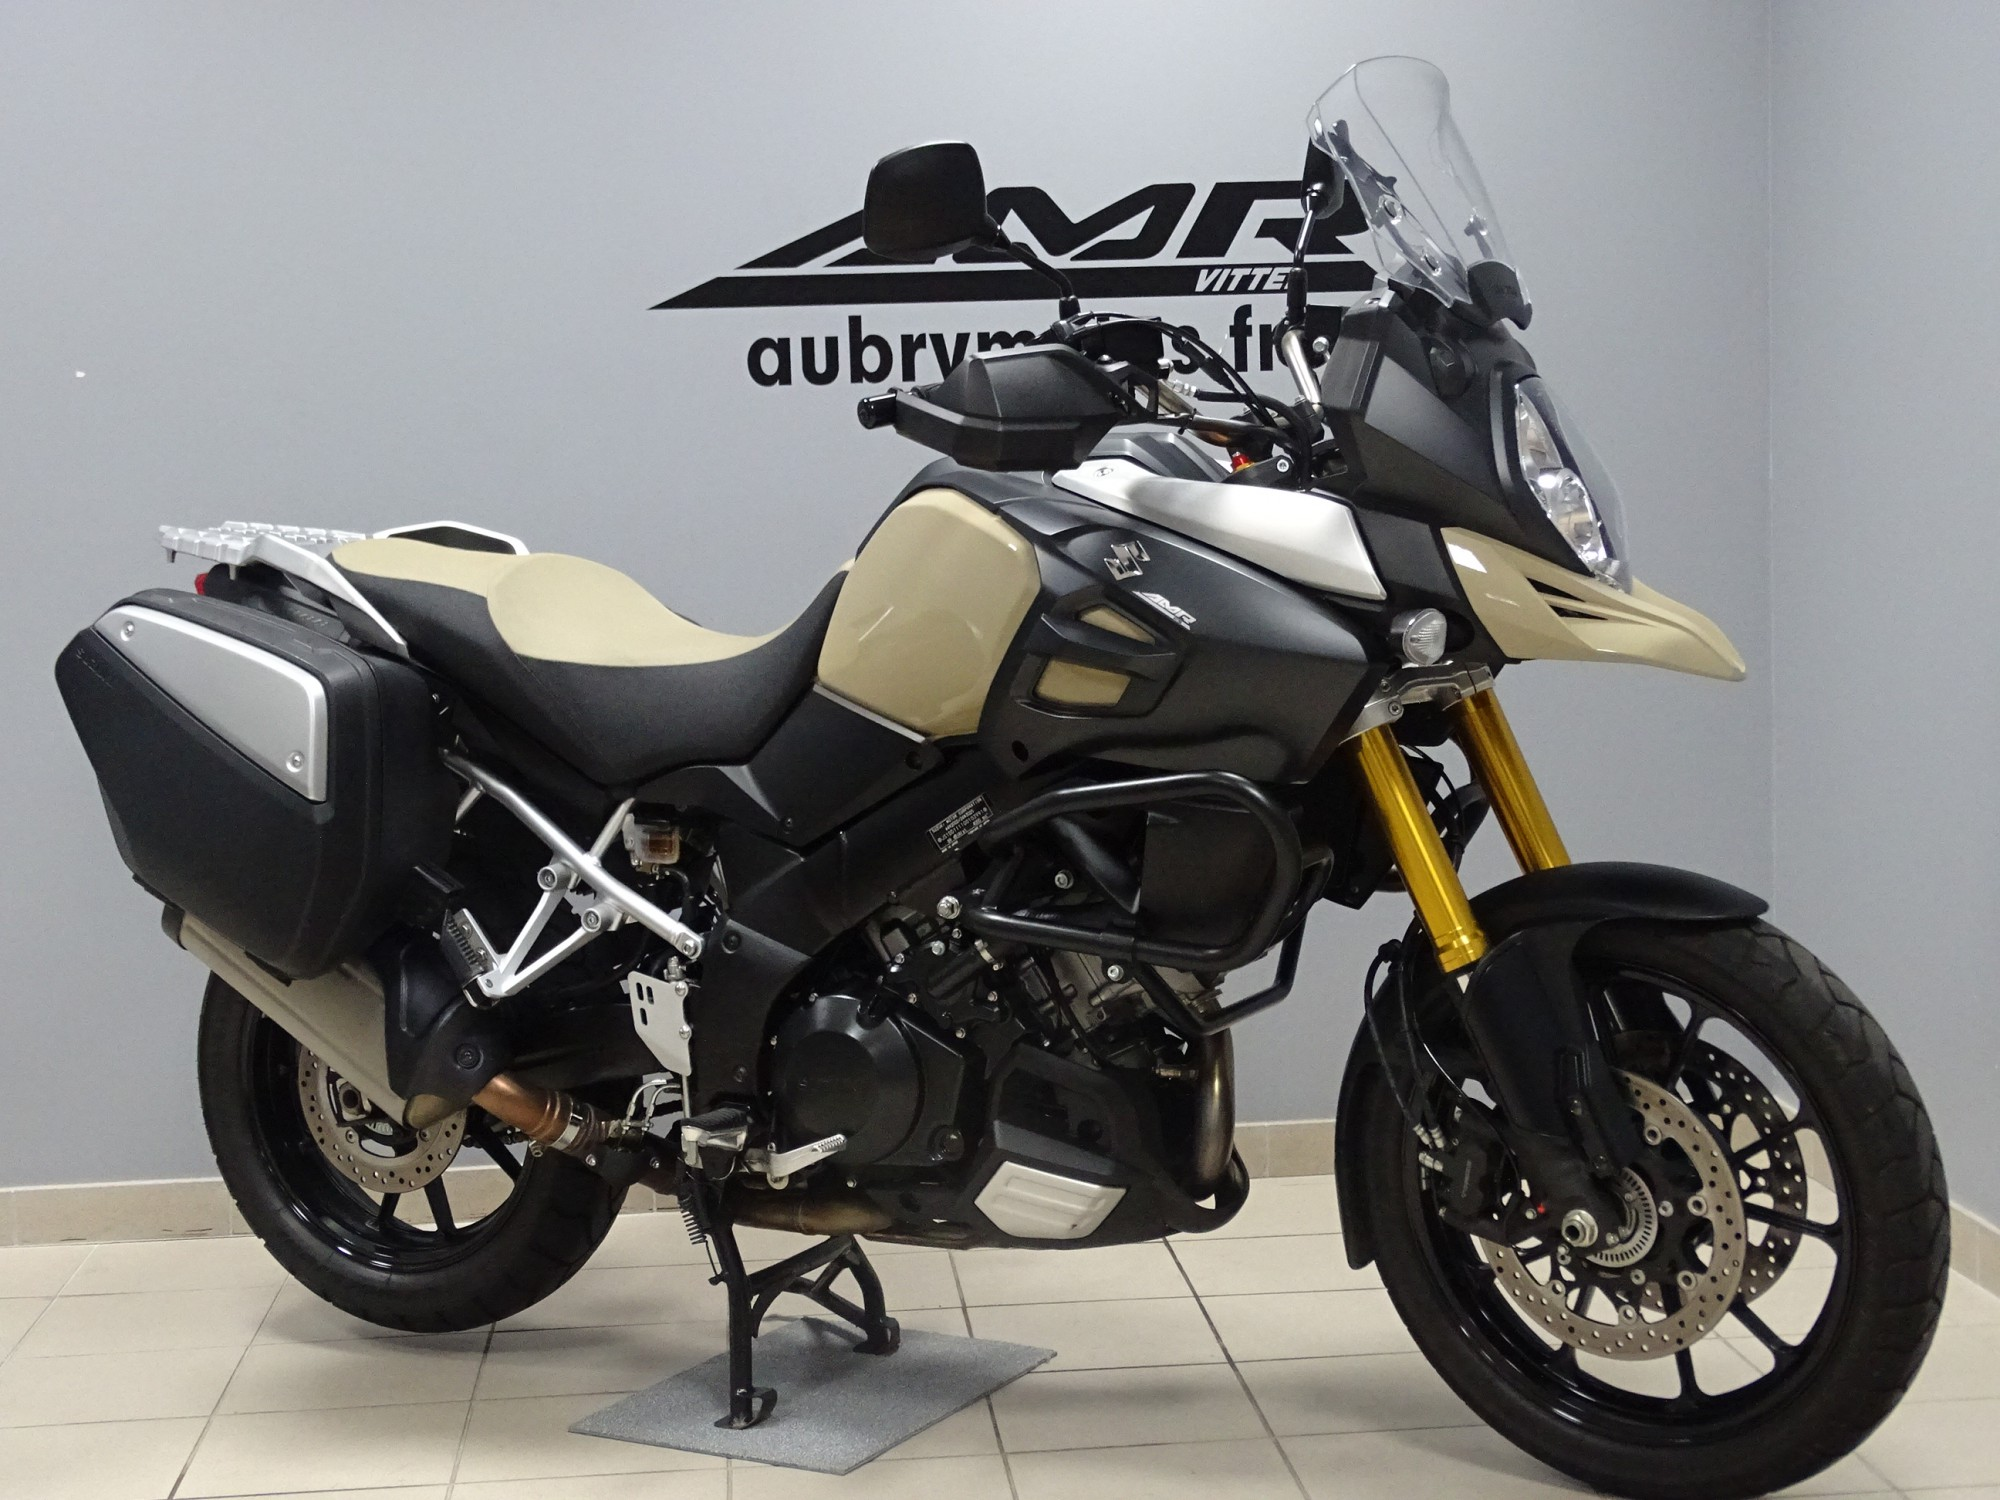 SUZUKI 1000 DL 1000 V-STROM ADVENTURE